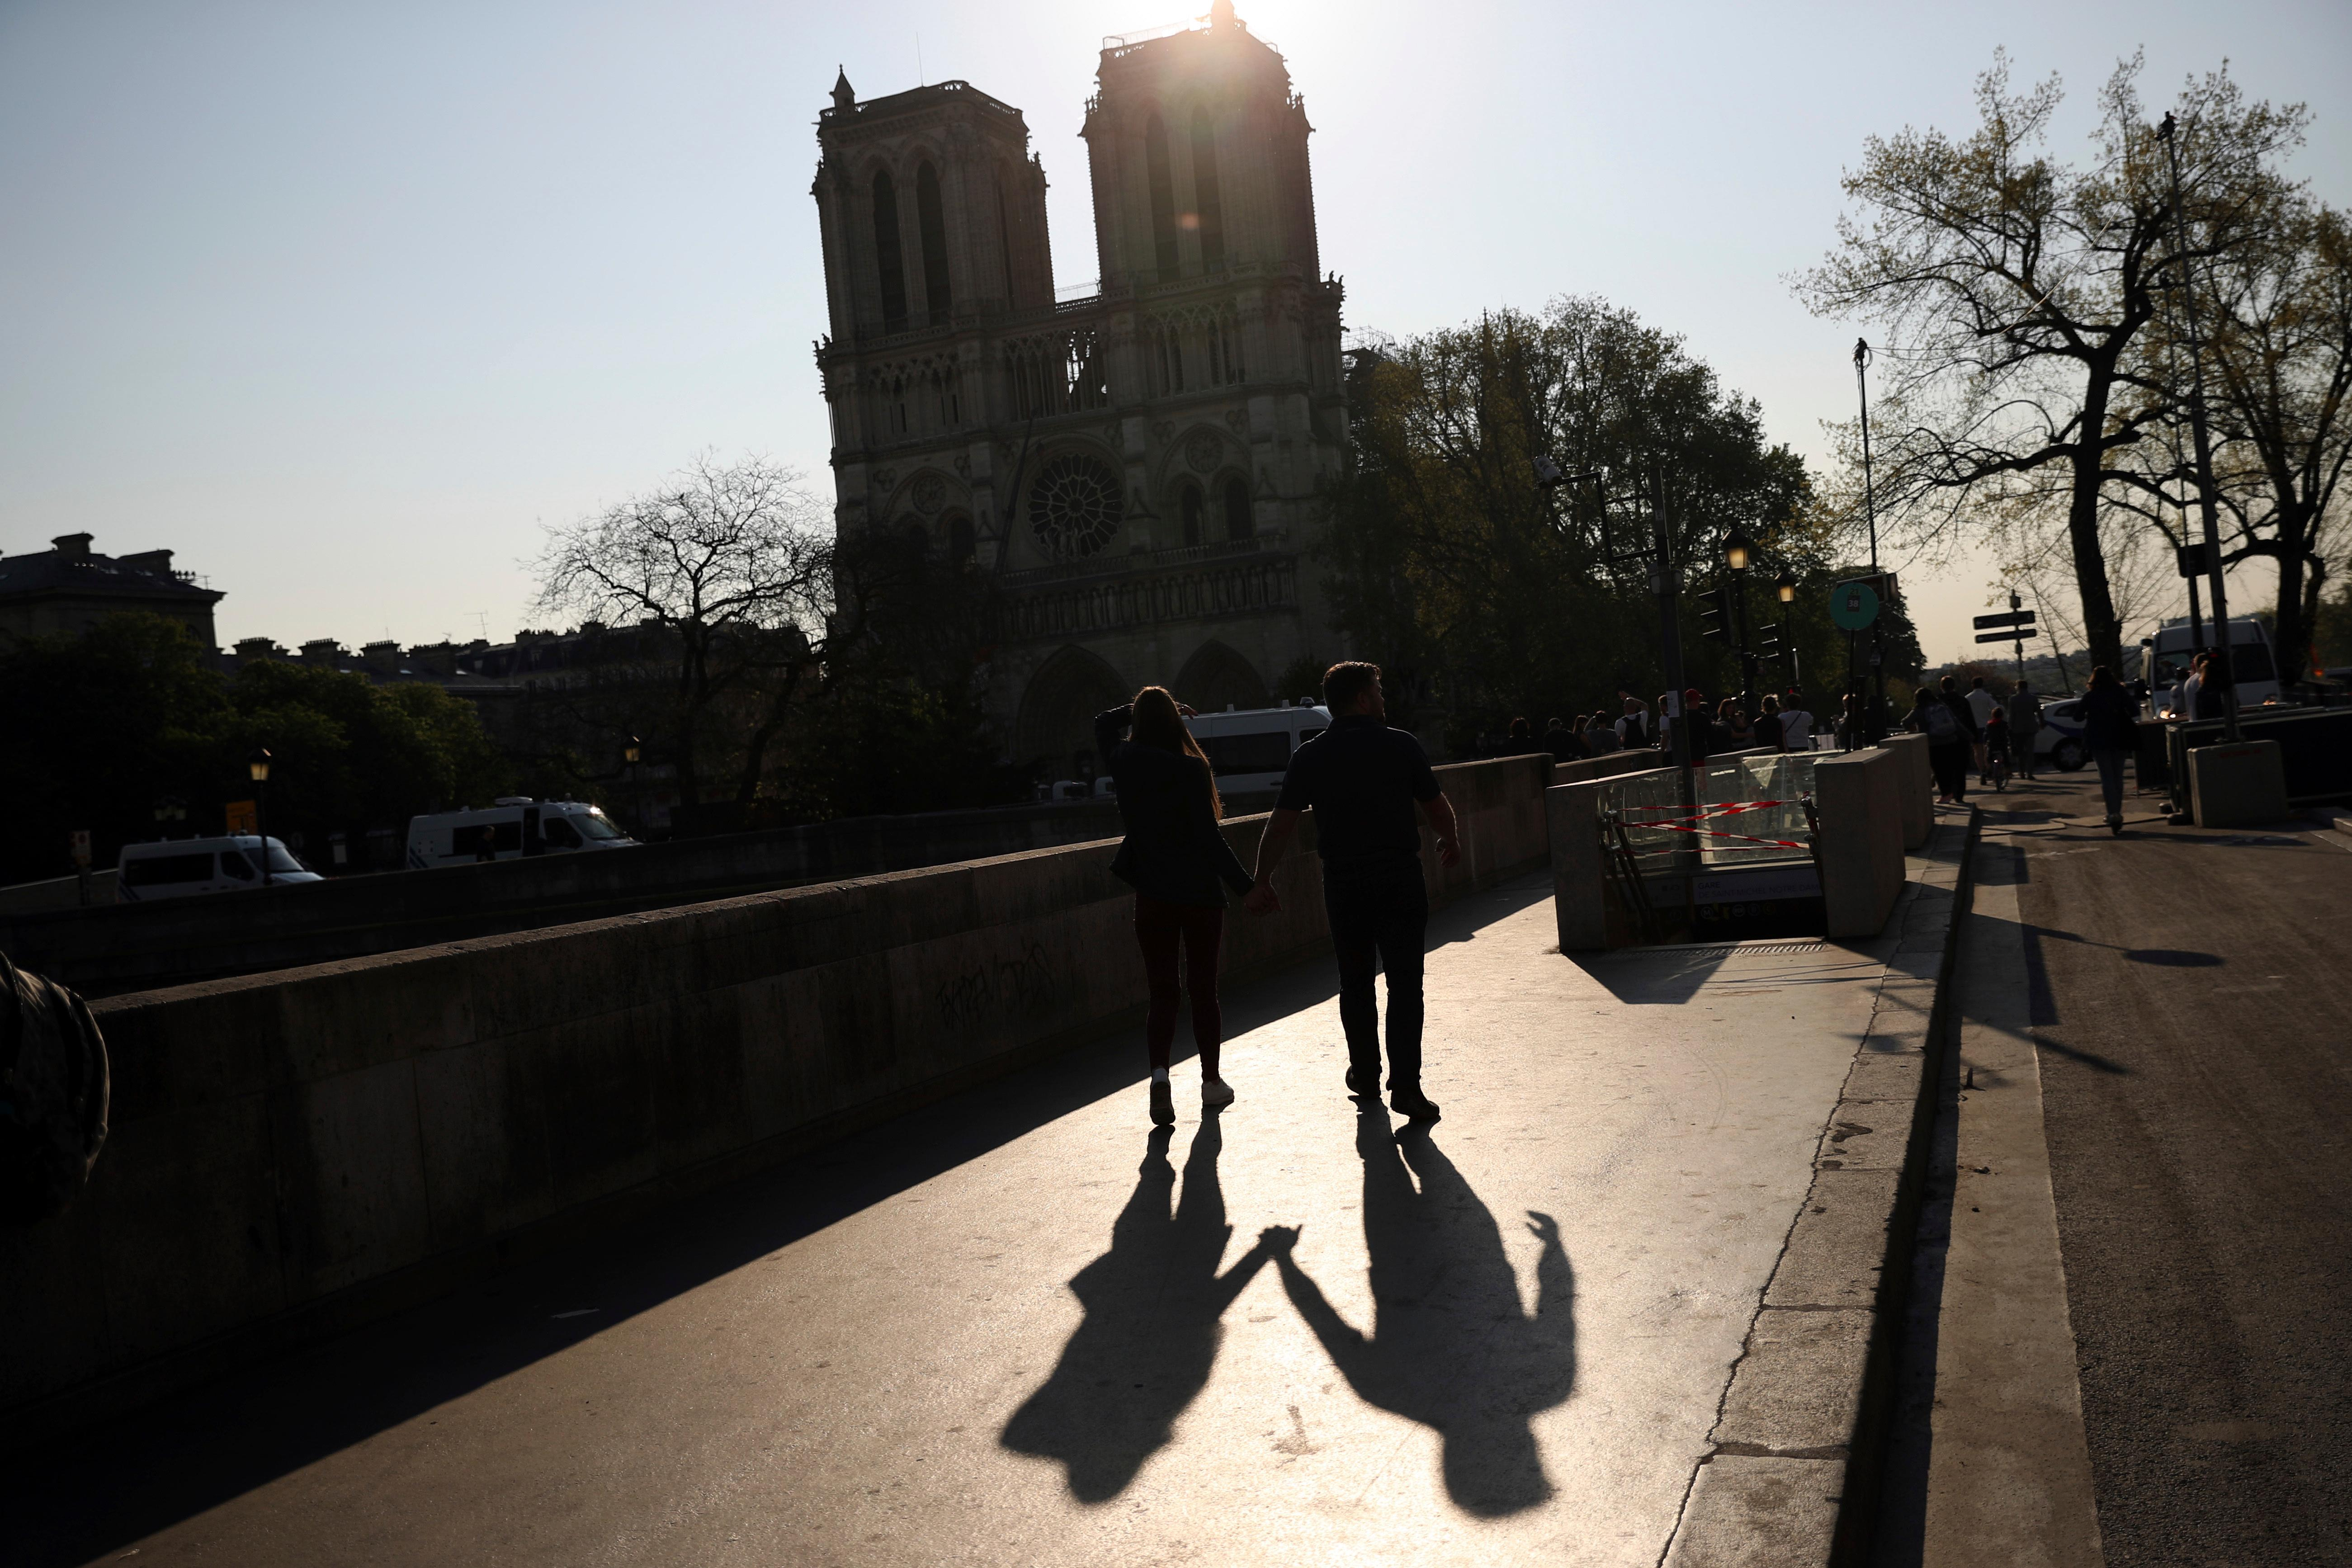 Two people walk by a the Notre Dame Cathedral in Paris, Saturday, April 20, 2019. Yellow vest protests are scheduled to take place in Paris and other regions of France over the weekend, with a heightened security presence anticipated. (AP Photo/Francisco Seco)